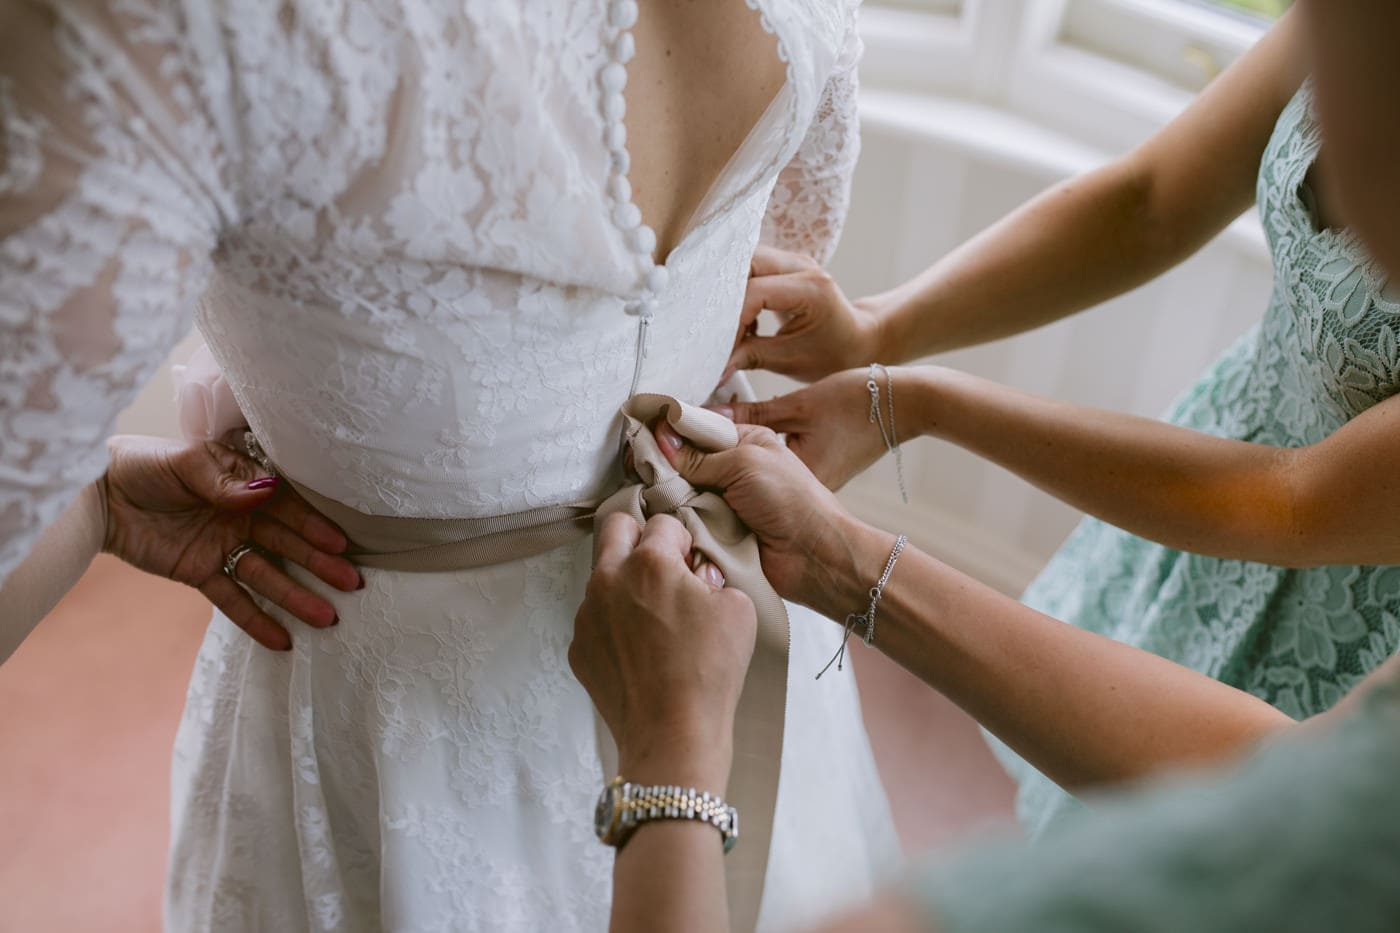 Zipping up the Wedding Dress with Bridesmaids Photograph